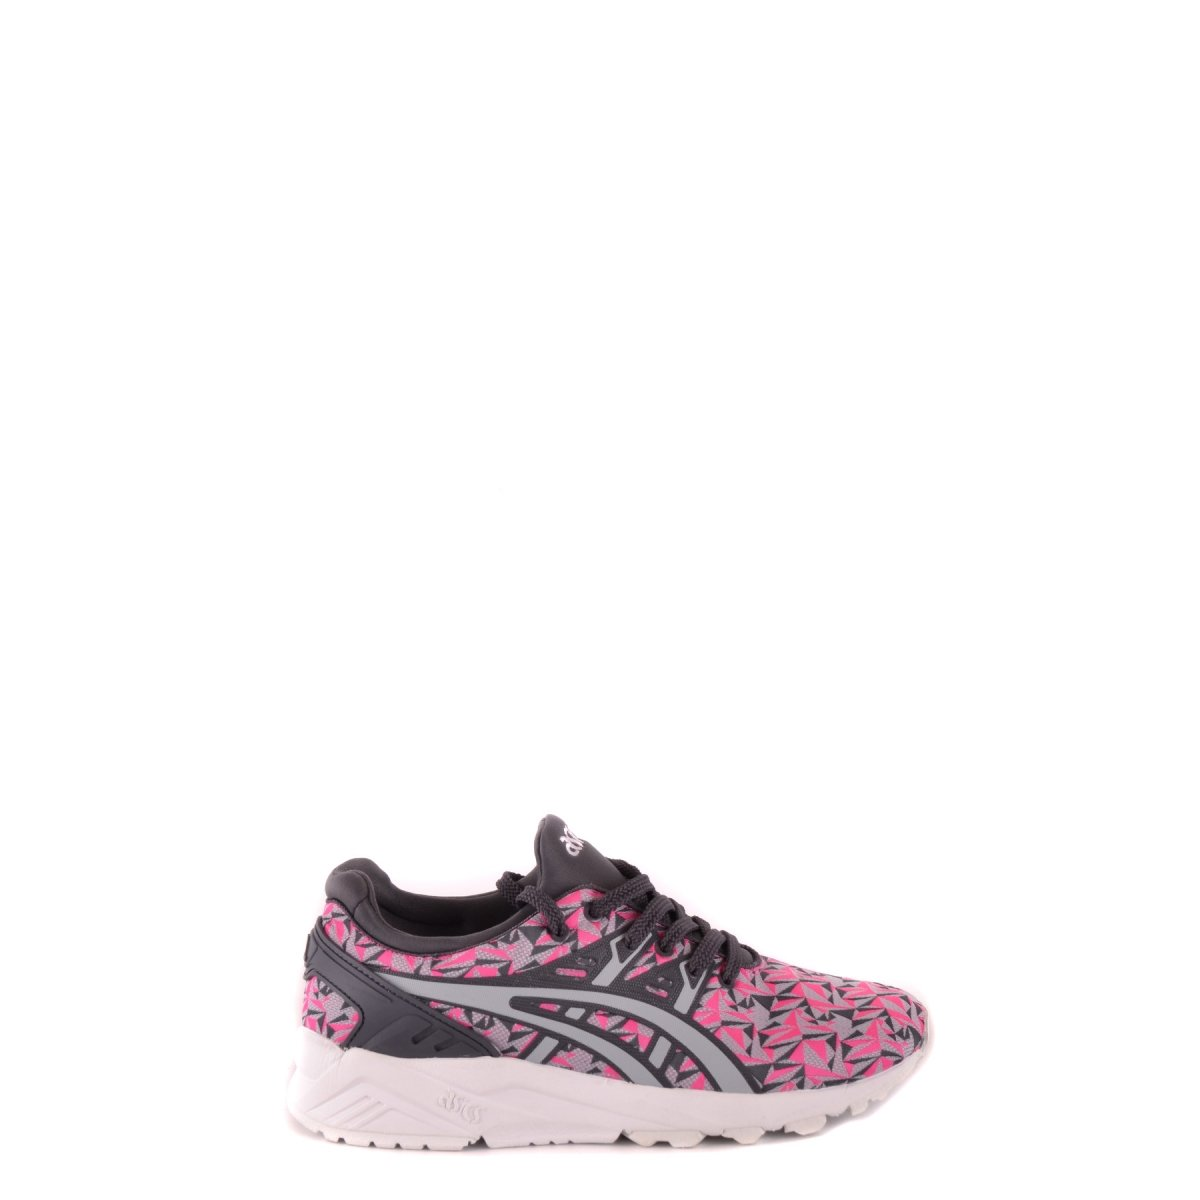 Asics Womens Gel Kayano Evo Low Top Trainers Pink Size 40 1/2